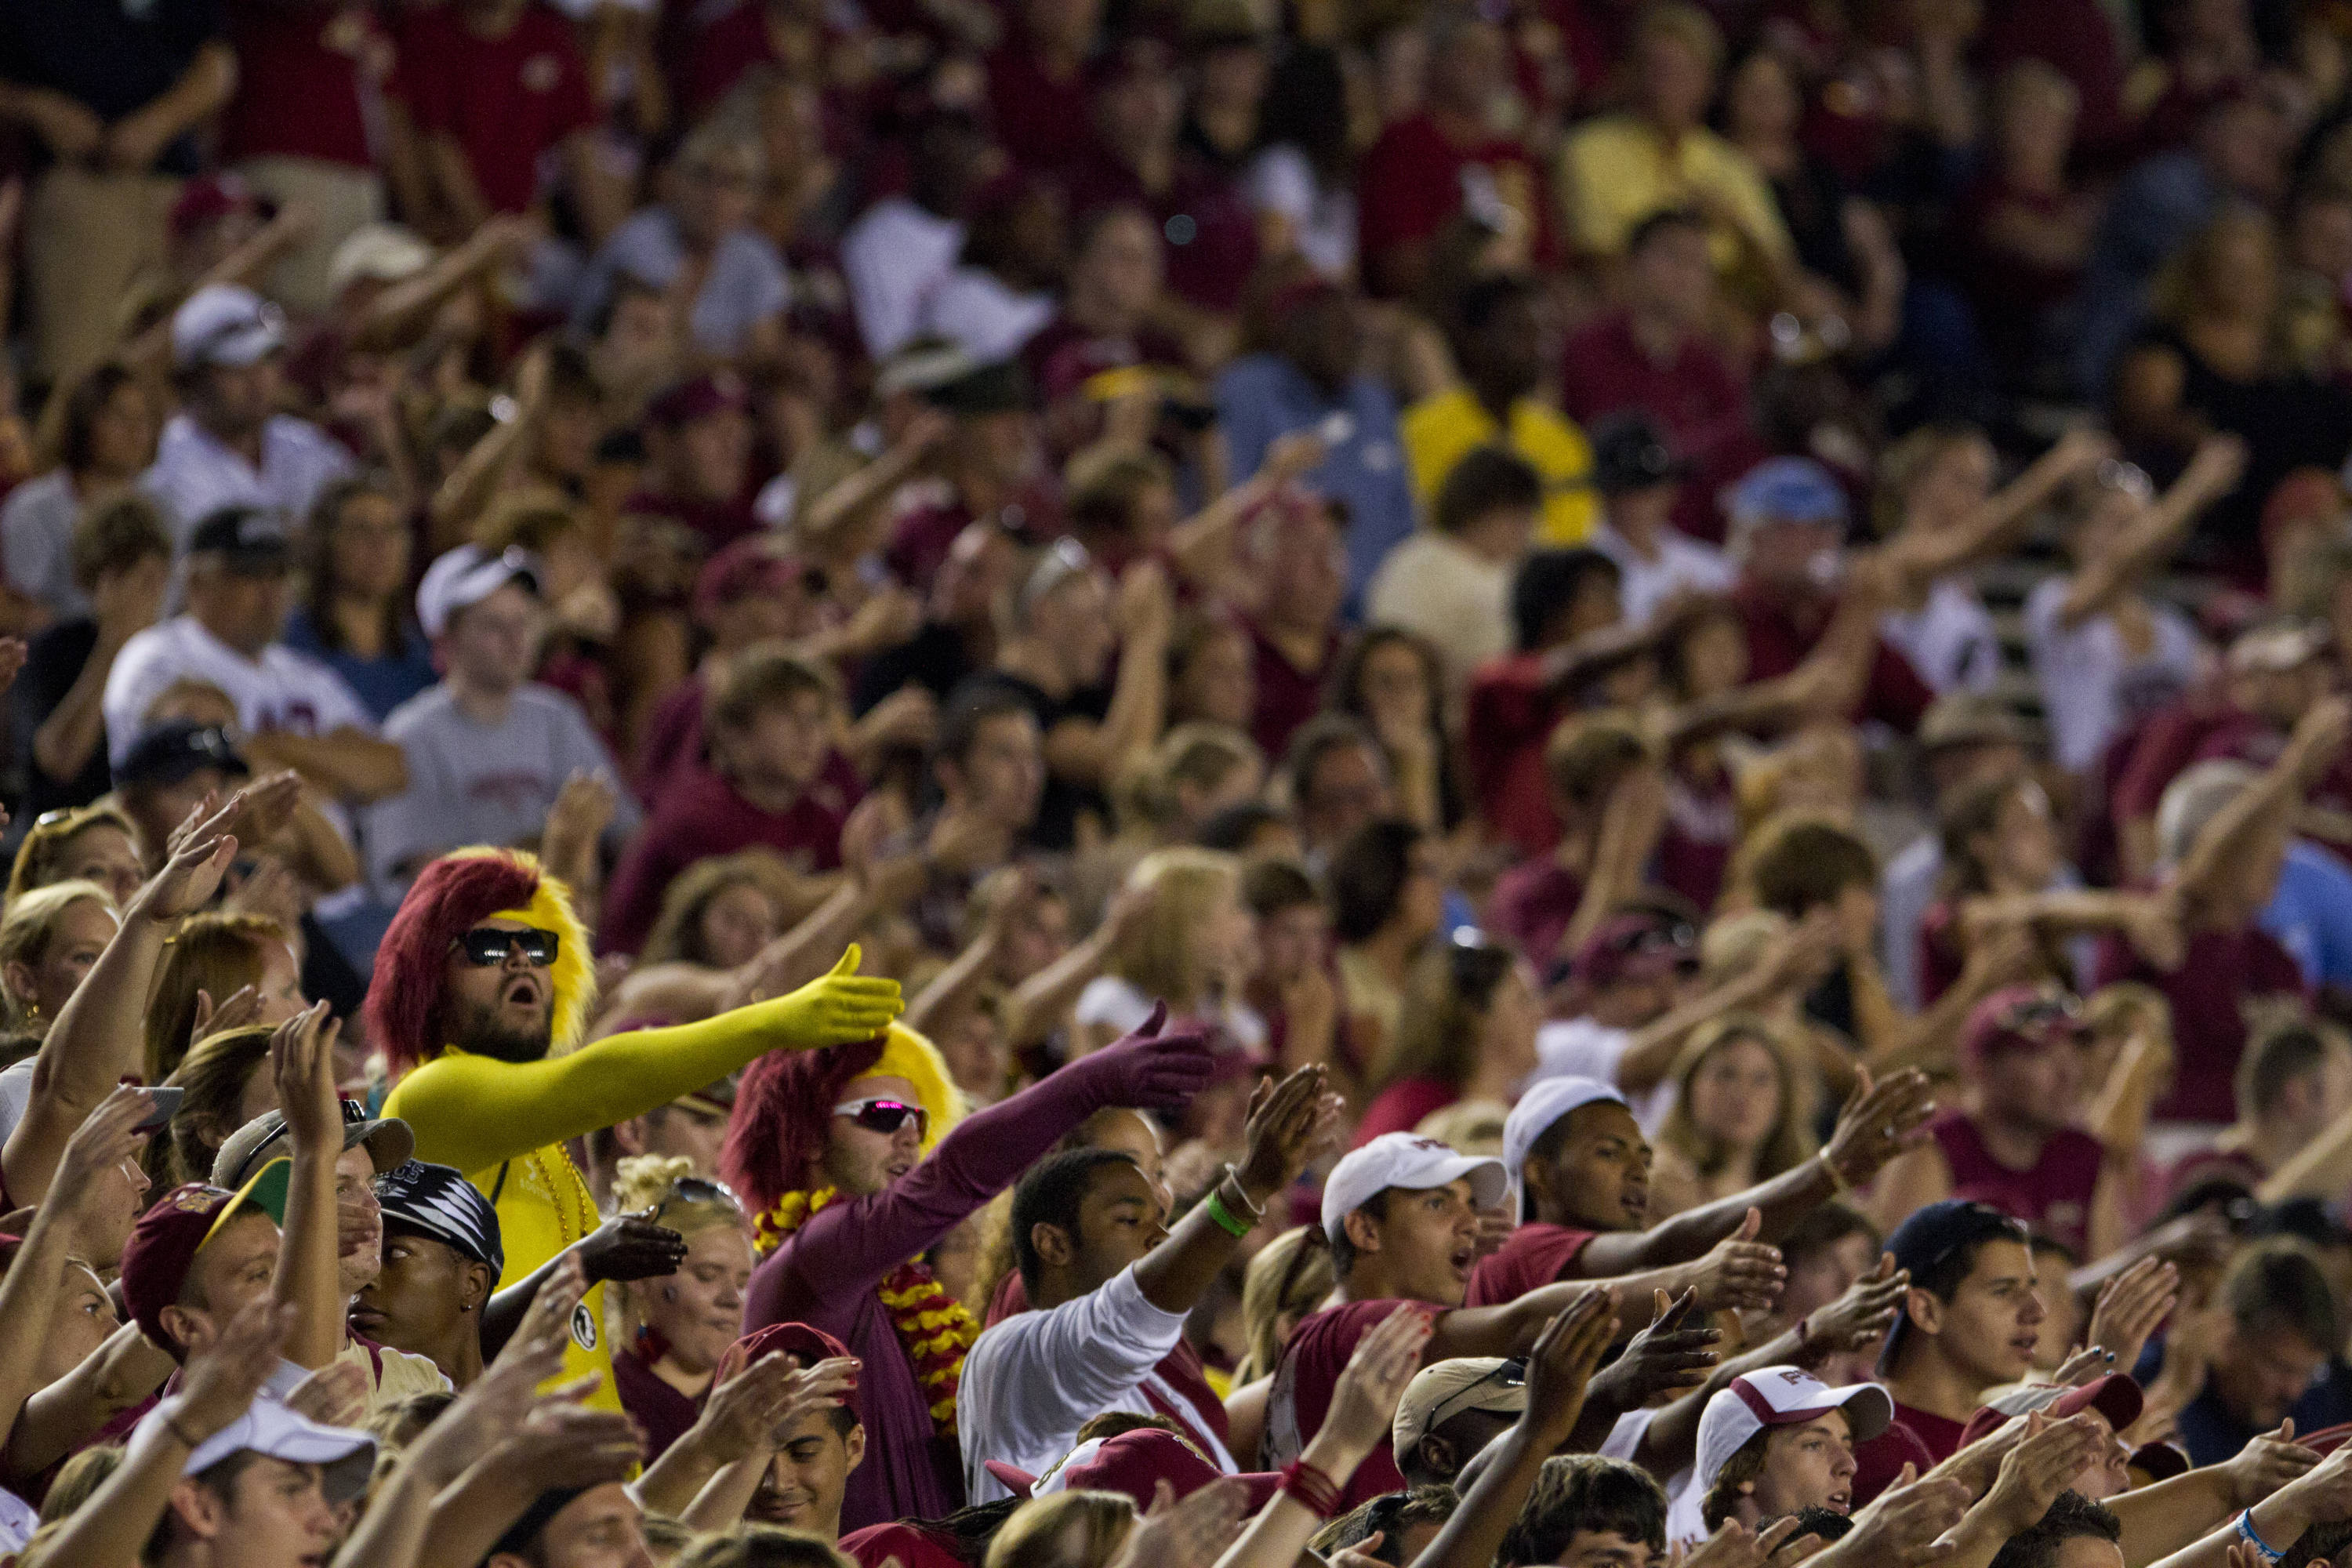 Fans cheer on the 'Noles during the game against CSU on September 10, 2011.